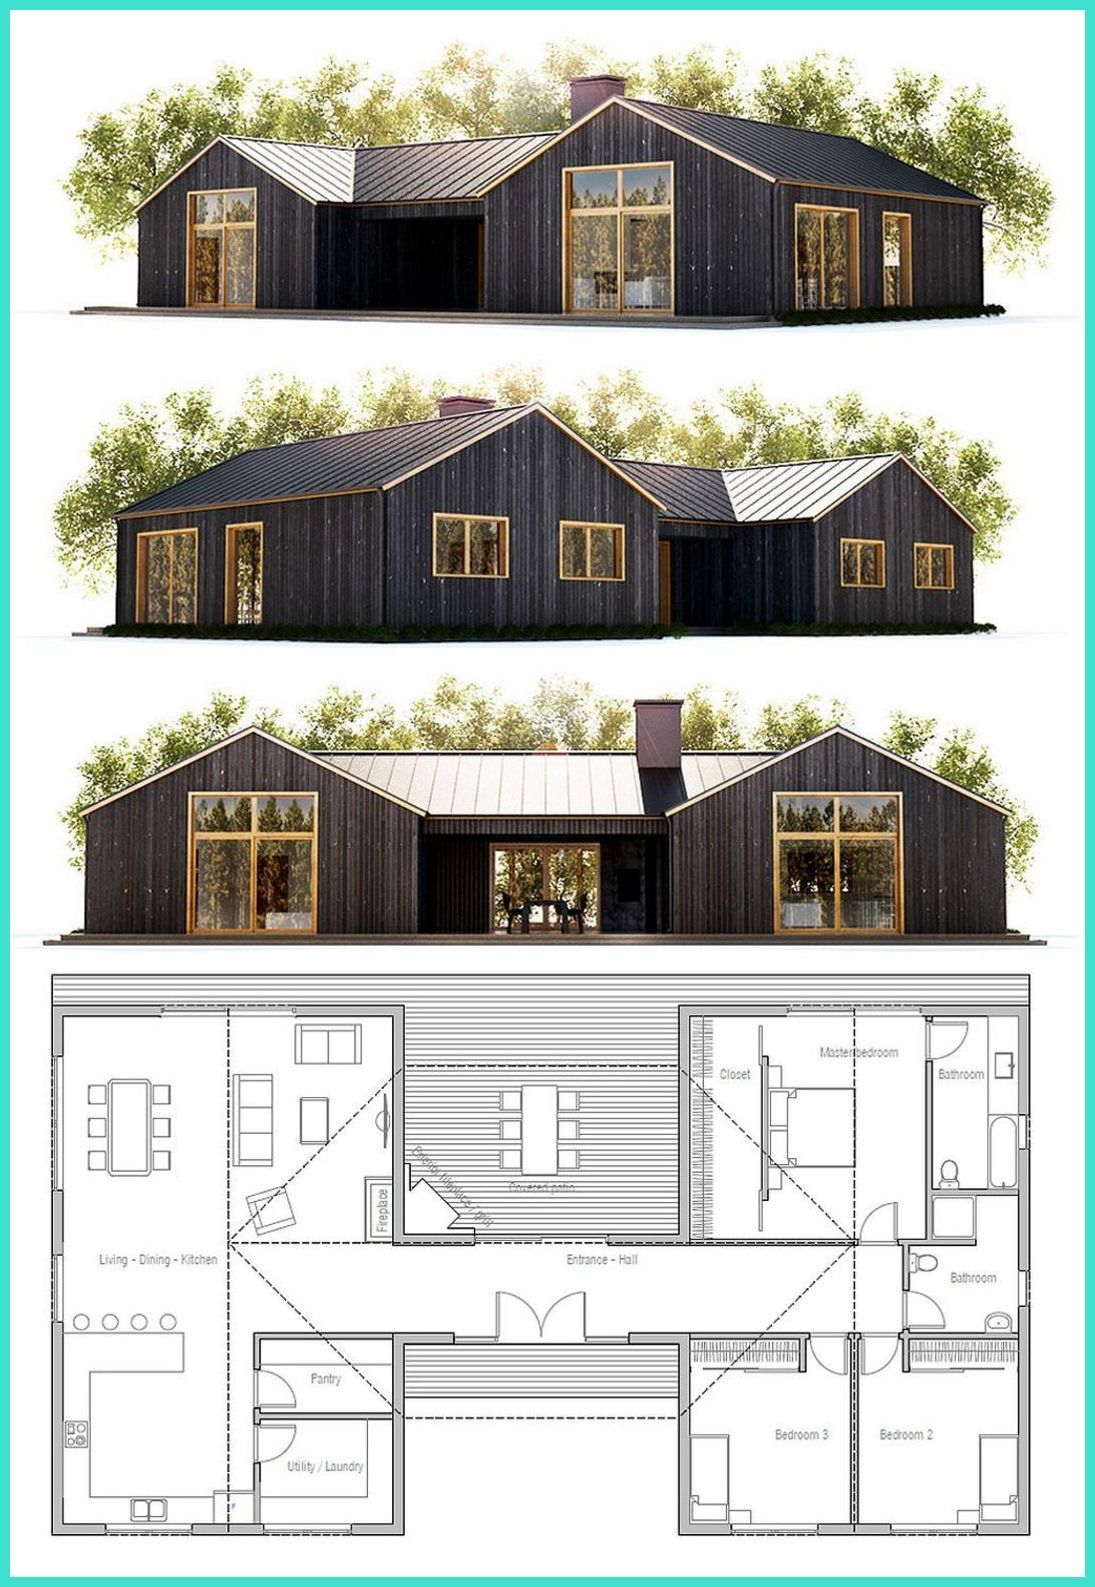 Custom Doors Add Tranquility To Your Home Interiors Home Interiors Check Out The Image B Container House Plans Barn House Plans Building A Container Home